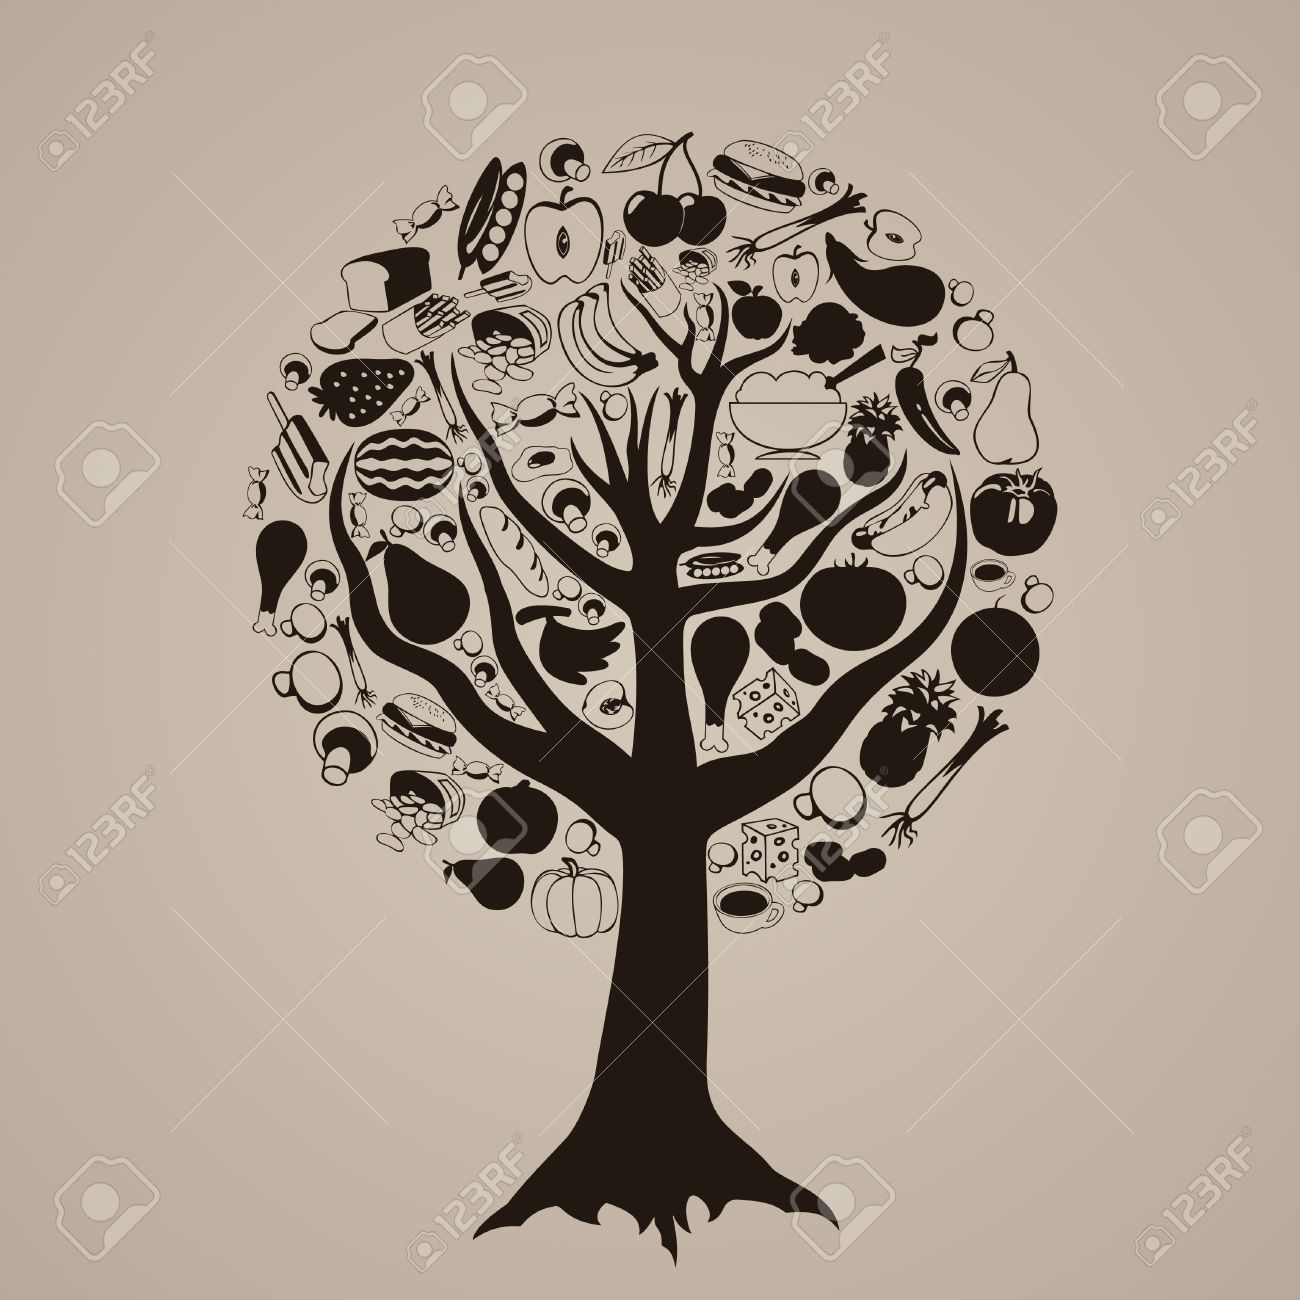 Food from trees clipart clipart transparent download Food from trees clipart - ClipartFest clipart transparent download